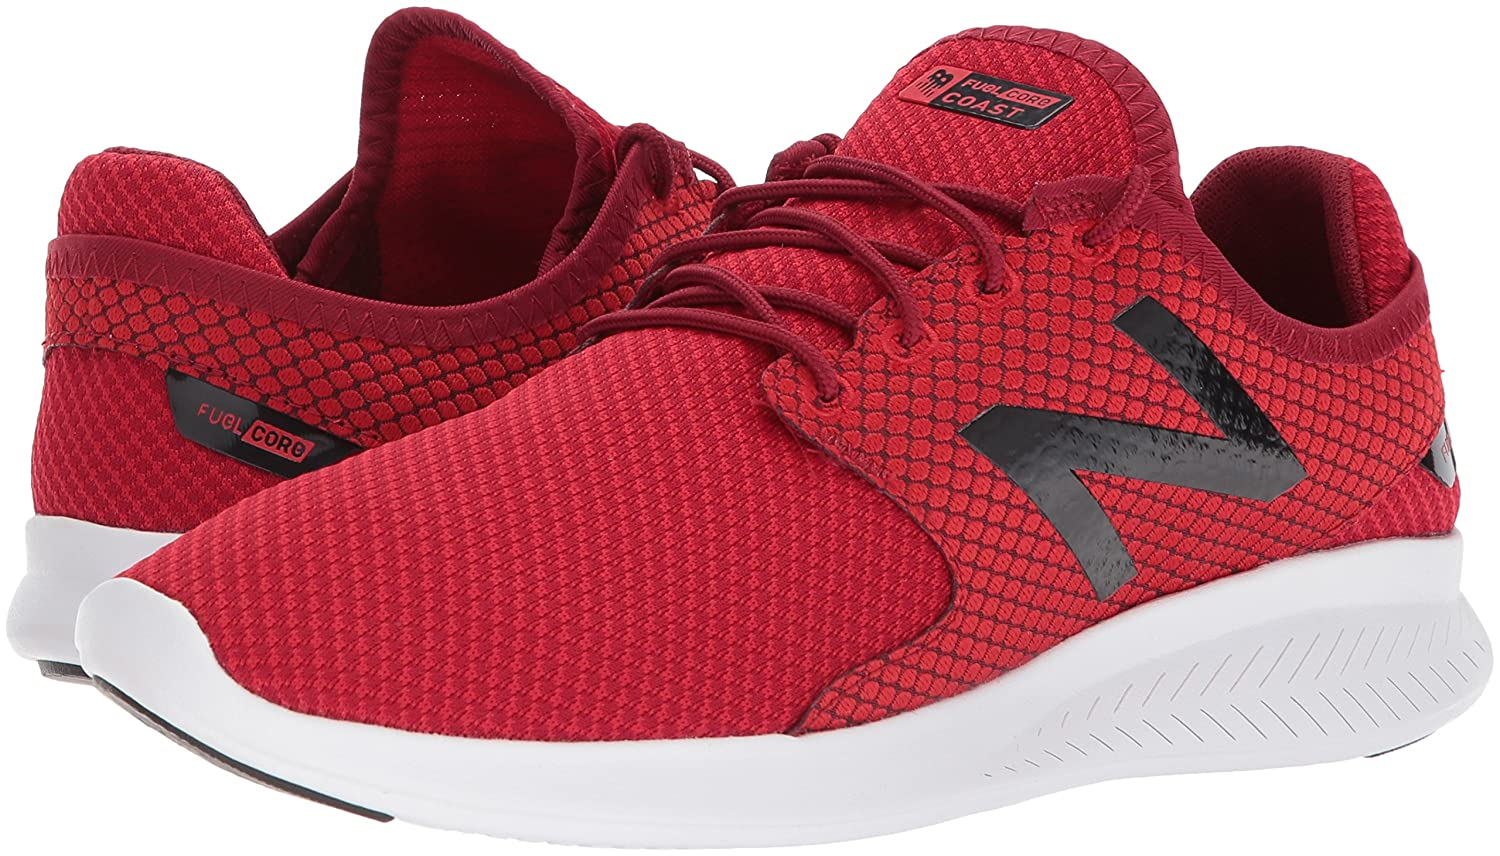 New Balance Mens FuelCore Coast v3 Running Shoe, Team red/Scarlet, 7 4E US